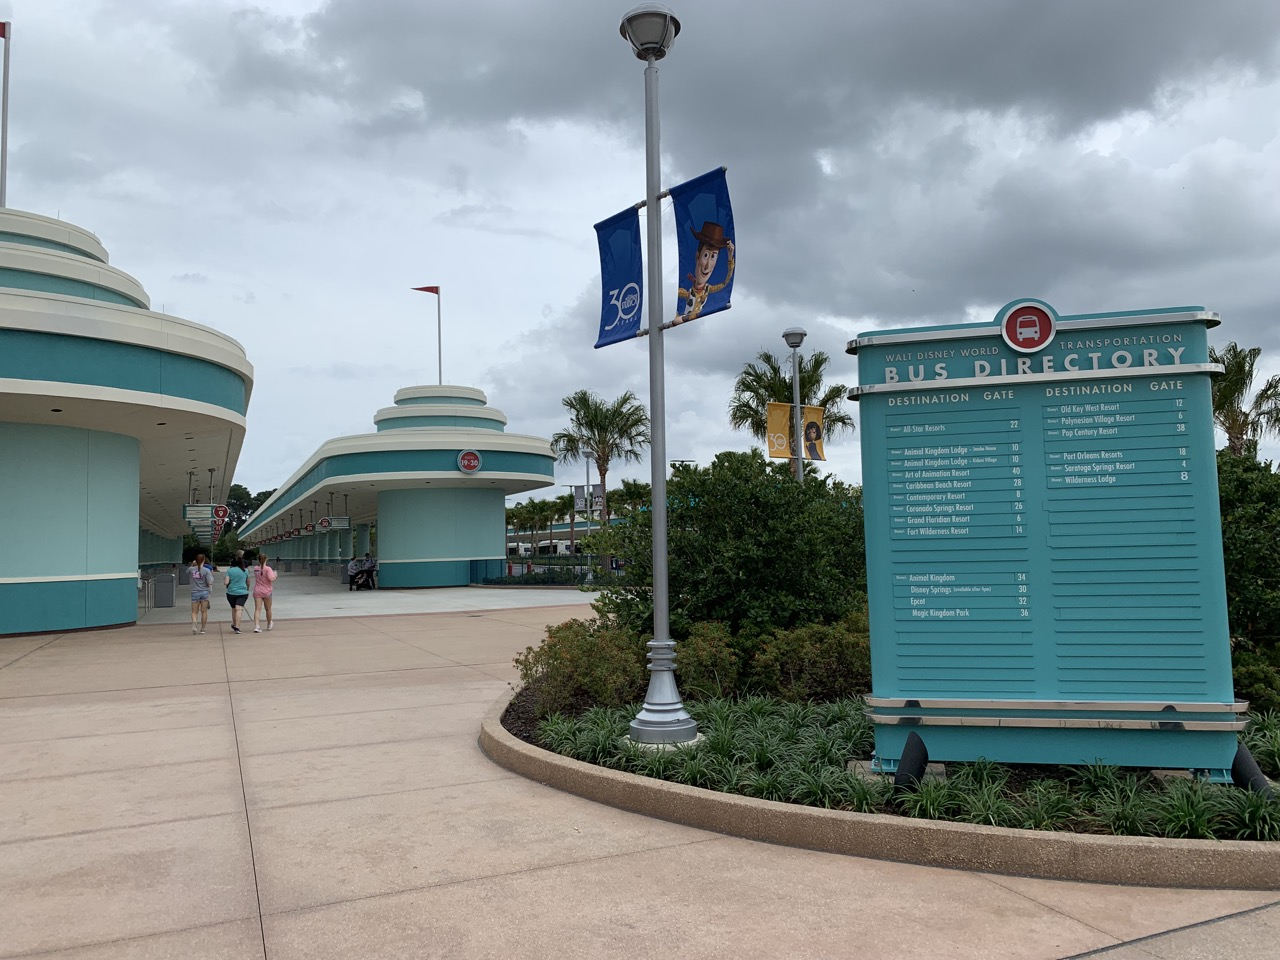 disney world trip report early summer 2019 day two 48 bus loop.jpeg